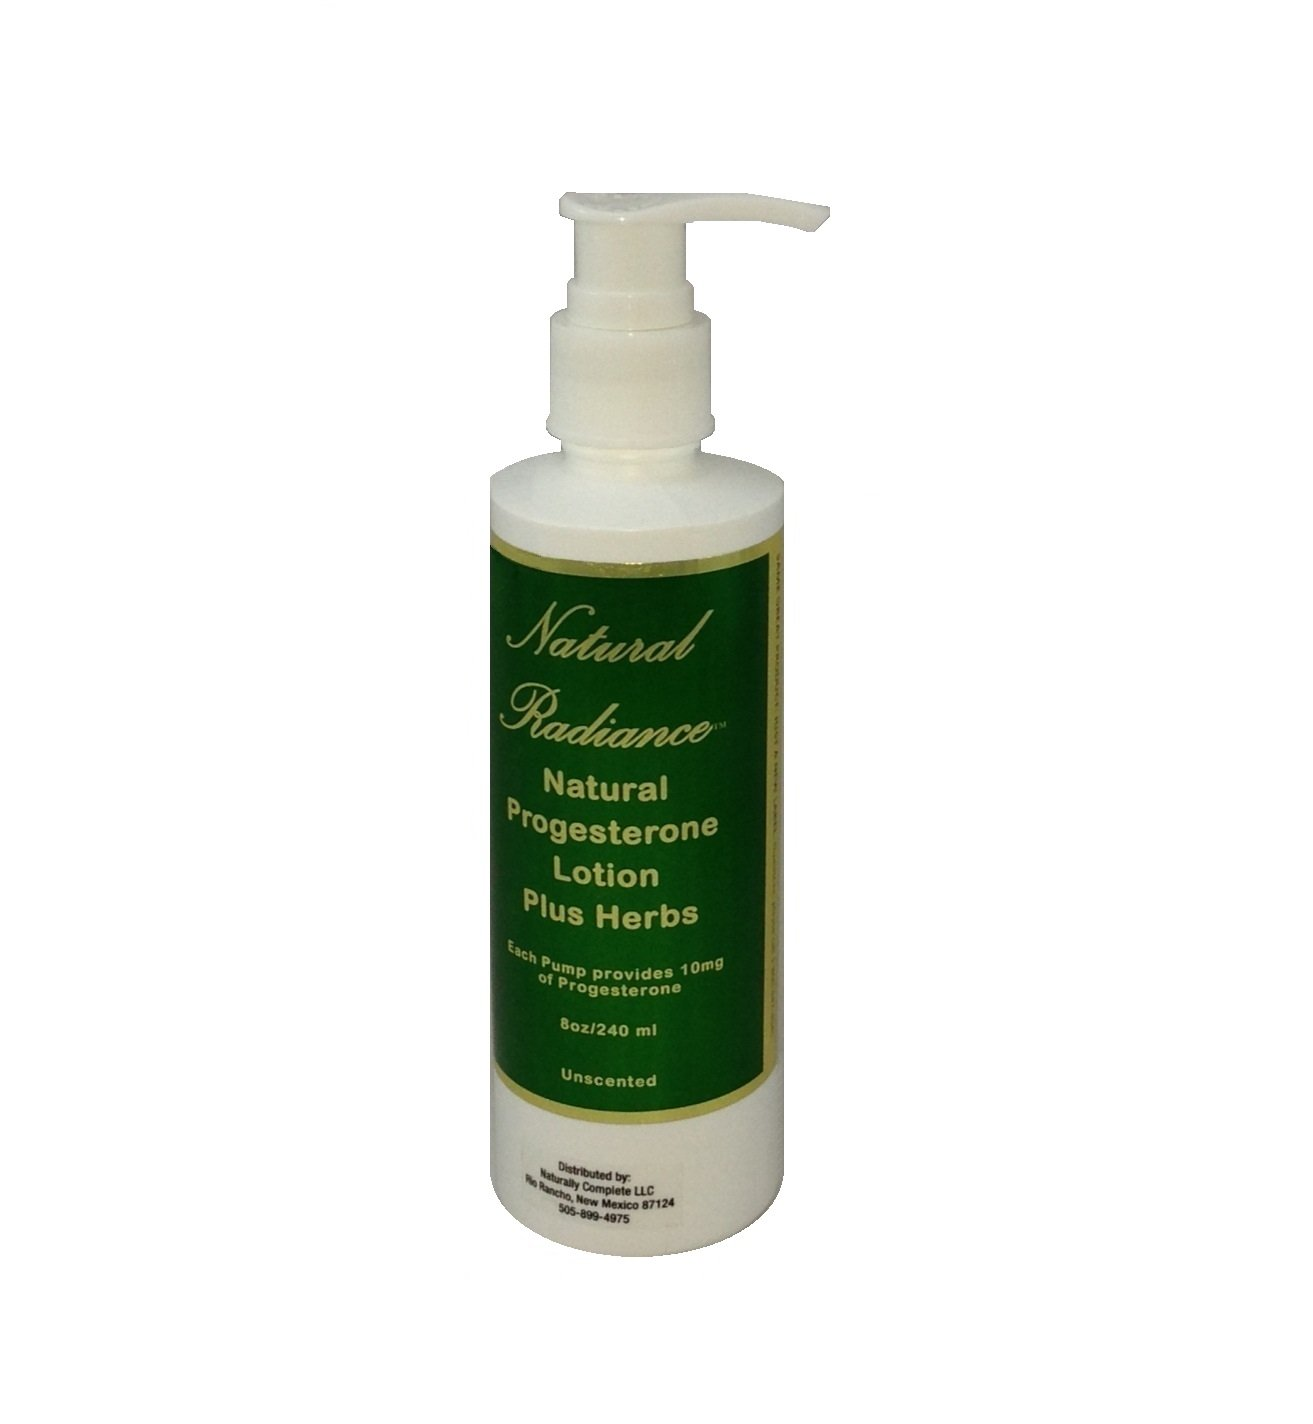 Natural Radiance Progesterone Plus Herbs - Soy-Free & Paraben-Free Lotion - Fragrance Free/Unscented 8 oz. Pump Bottle